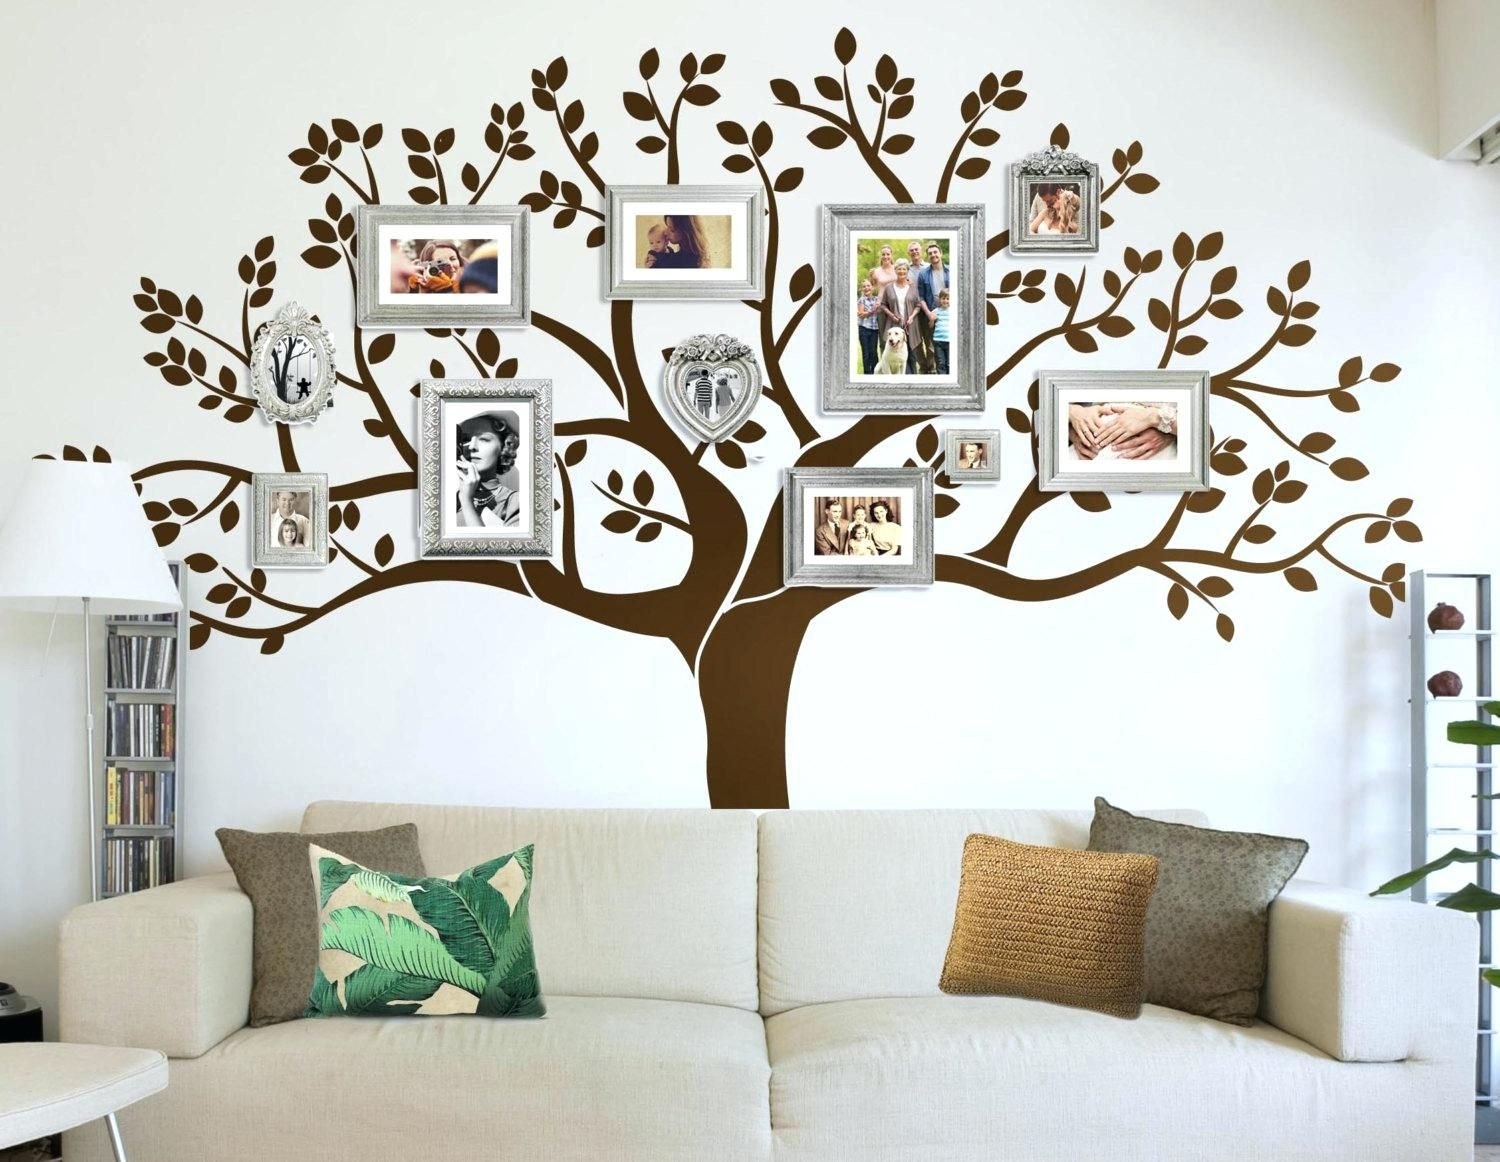 Stunning Large Wood Tree Wall Decor Art On Designs Decoration Diy With Regard To Most Up To Date Tree Wall Art (View 14 of 15)